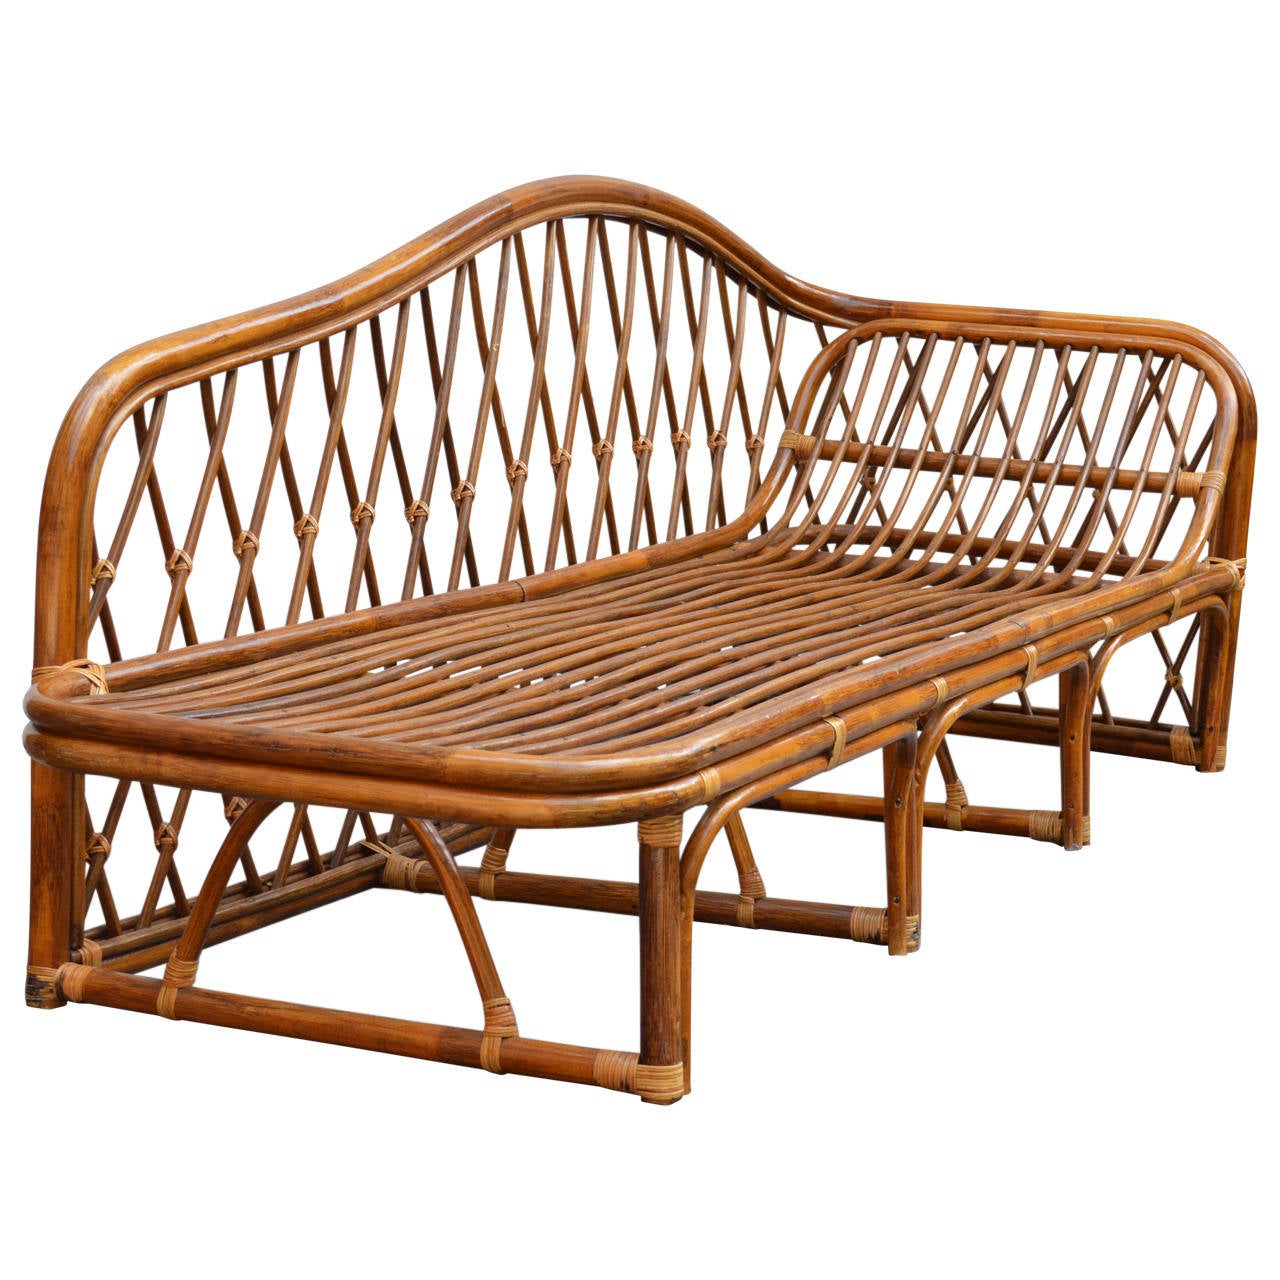 Attractive Vintage Rattan Chaise Lounge 1